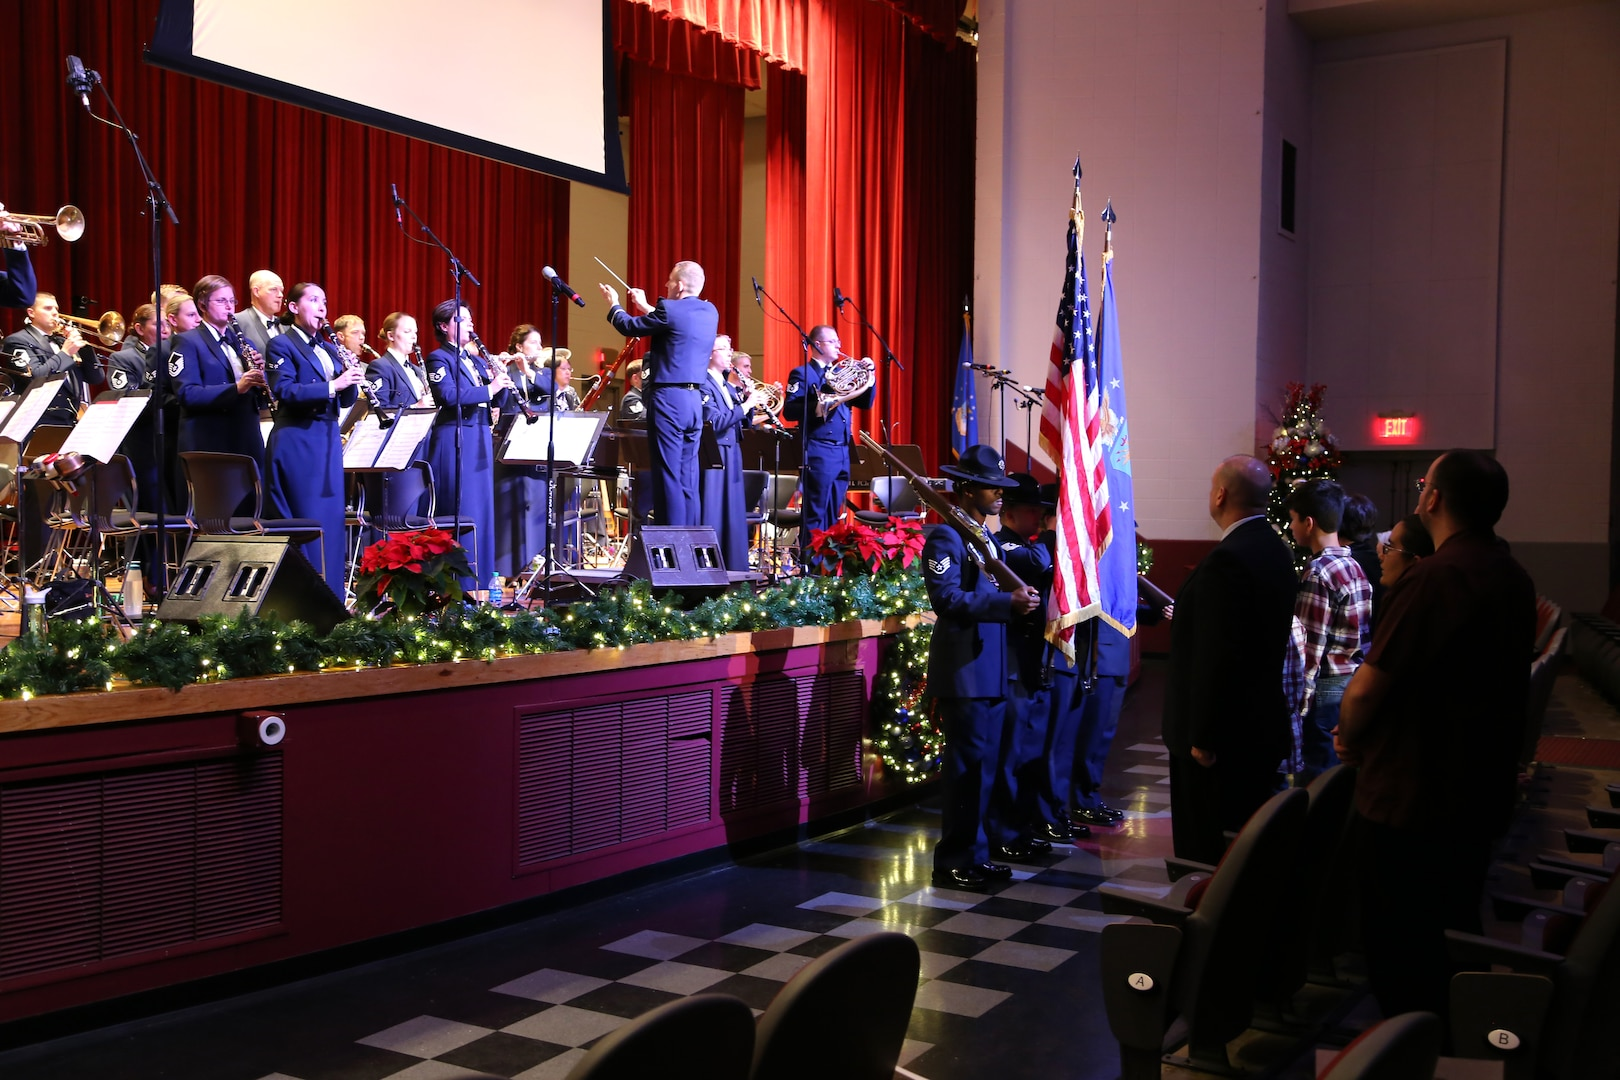 The Air Force Band of the West plays the Star Spangled Banner while military training instructors present the colors Dec. 17 at the Joint Base San Antonio-Lackland Bob Hope Theater. (U.S. Air Force photo by Airman 1st Class Lincoln Korver)